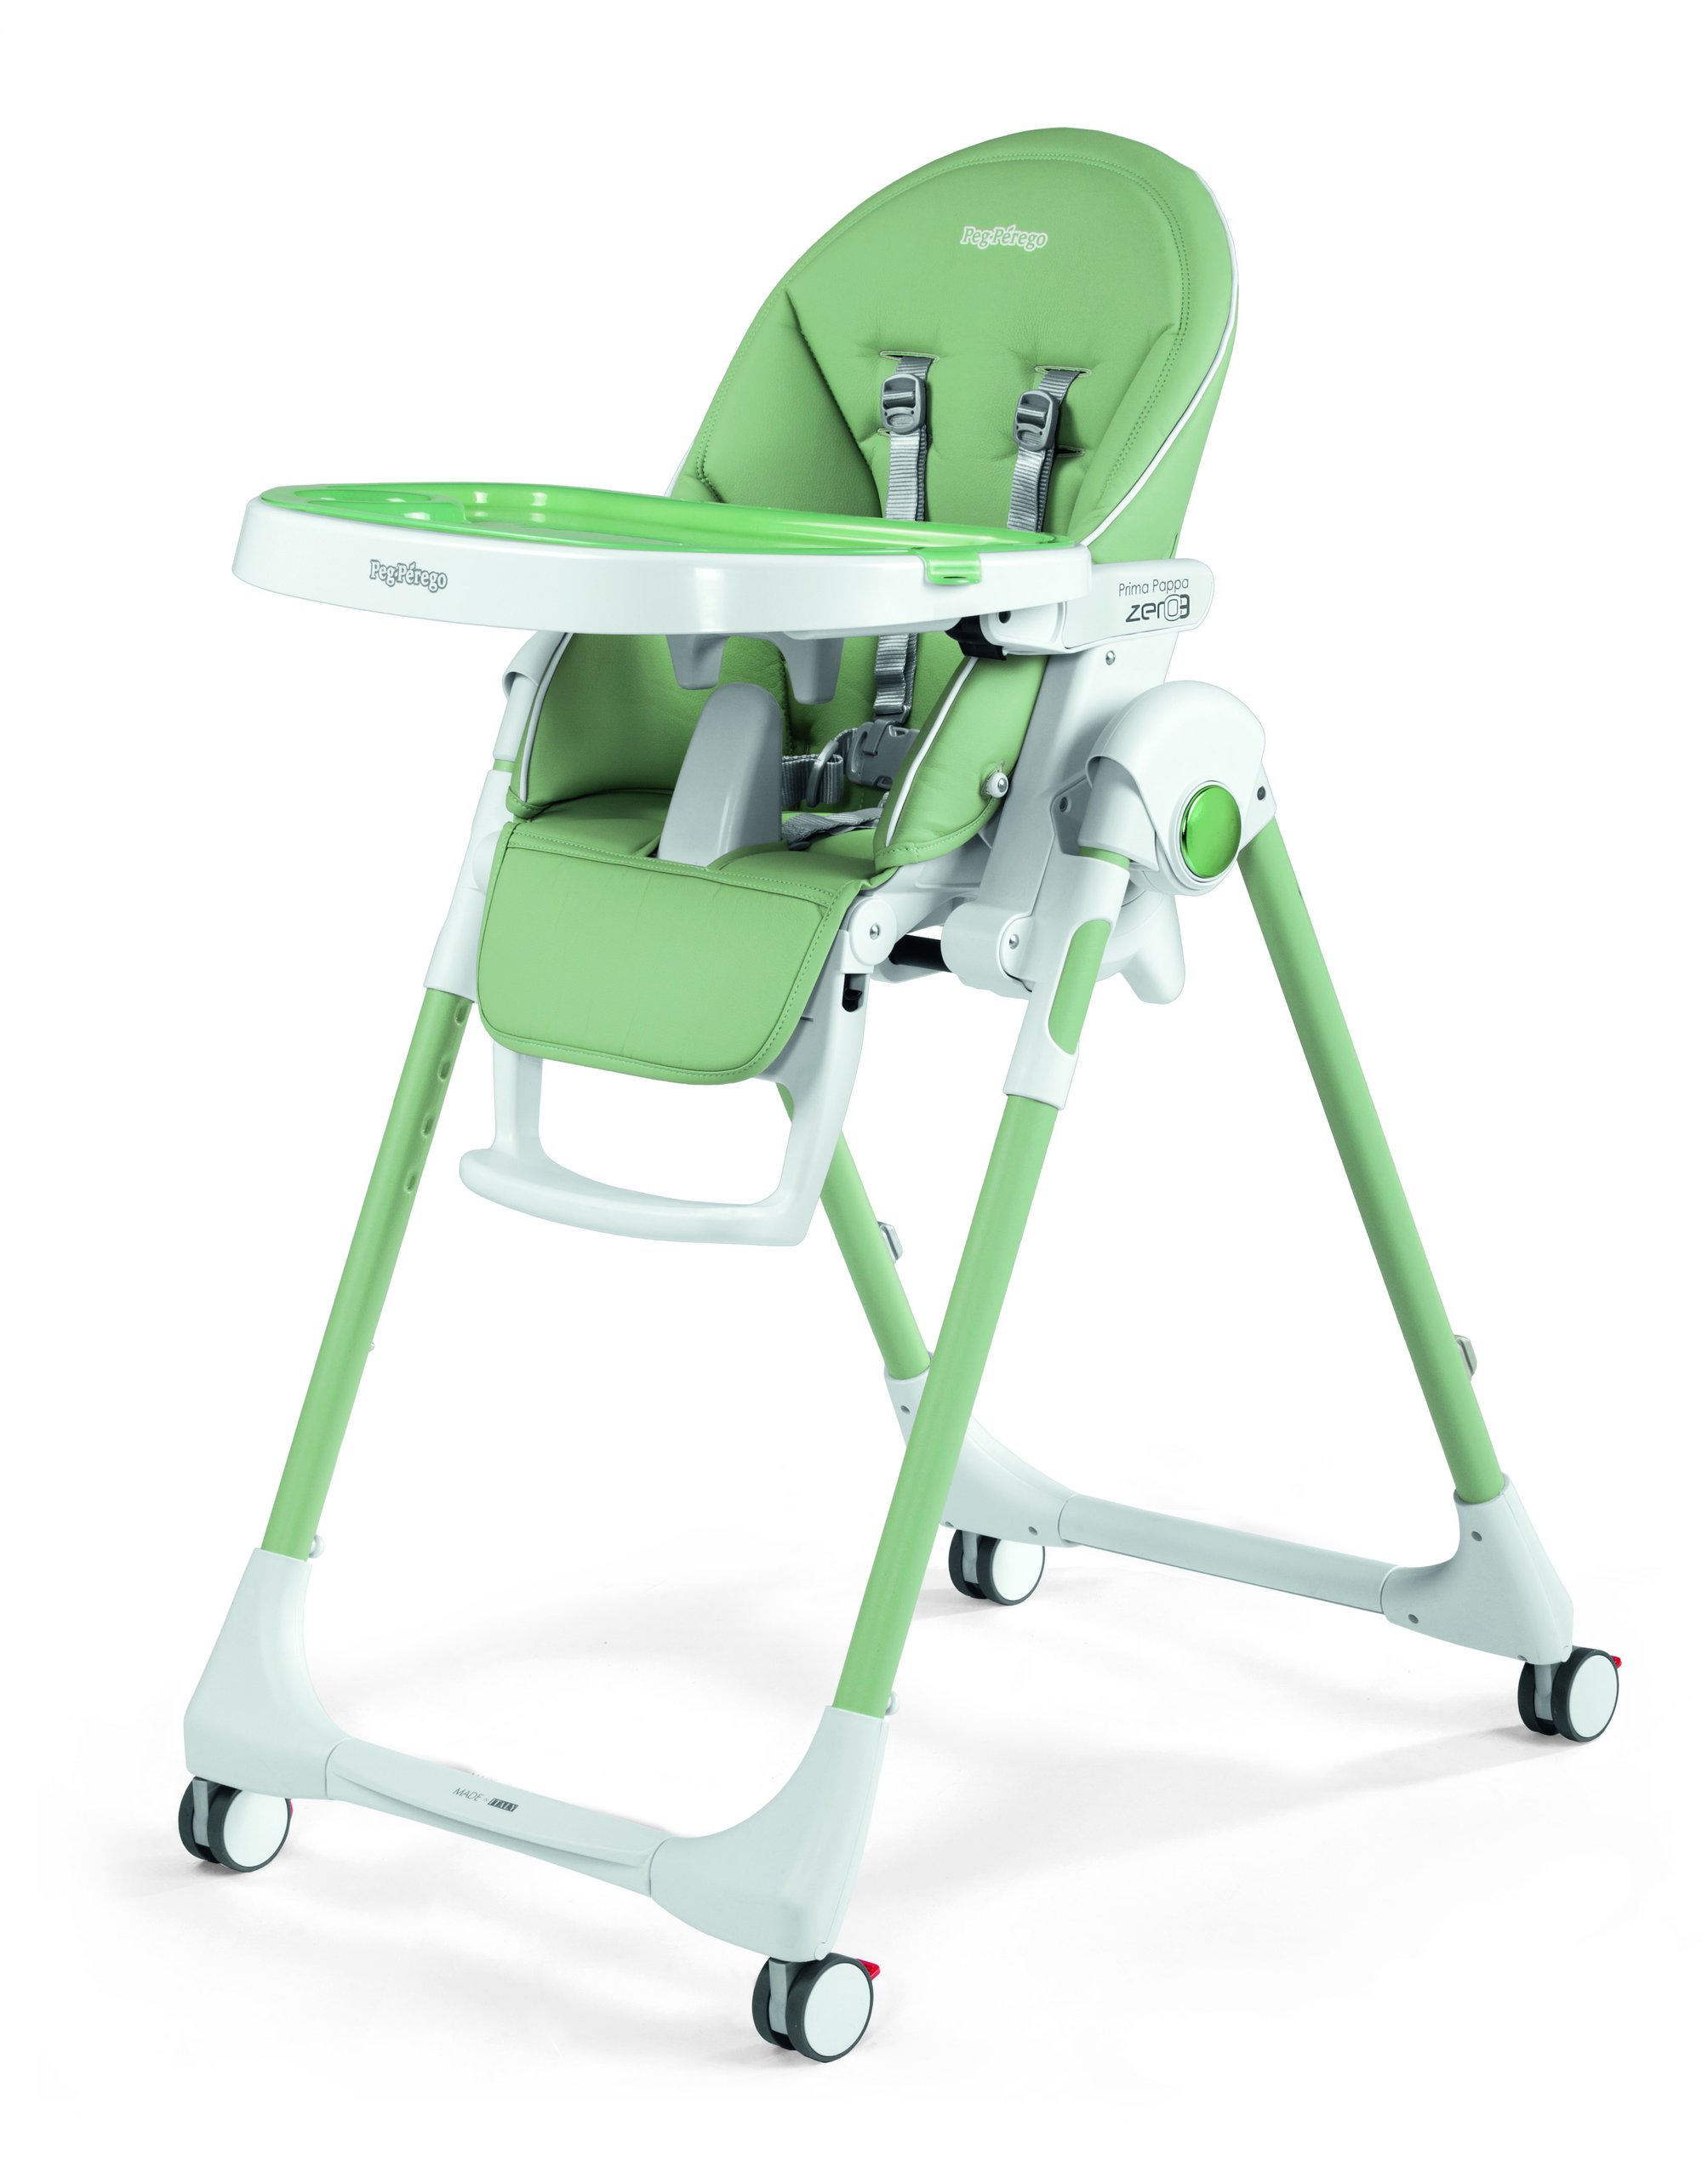 Peg Perego Prima Pappa Zero3 High Chair - Mint